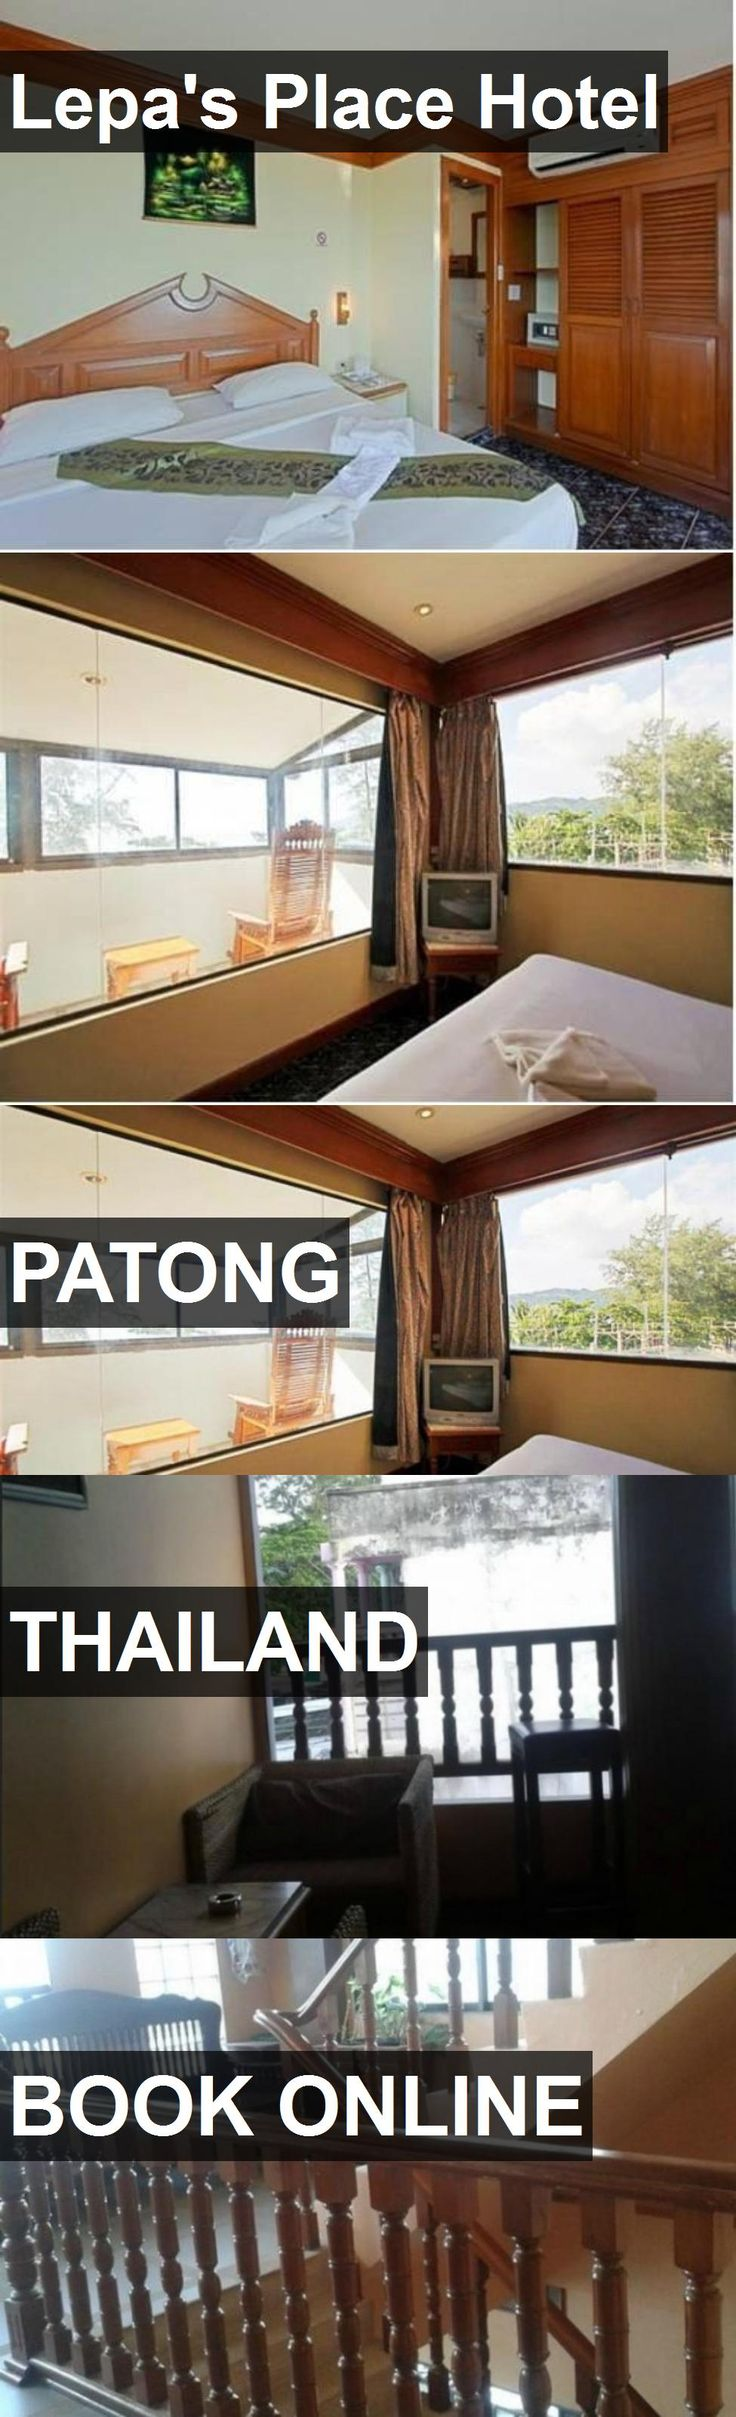 Lepa's Place Hotel in Patong, Thailand. For more information, photos, reviews and best prices please follow the link. #Thailand #Patong #travel #vacation #hotel